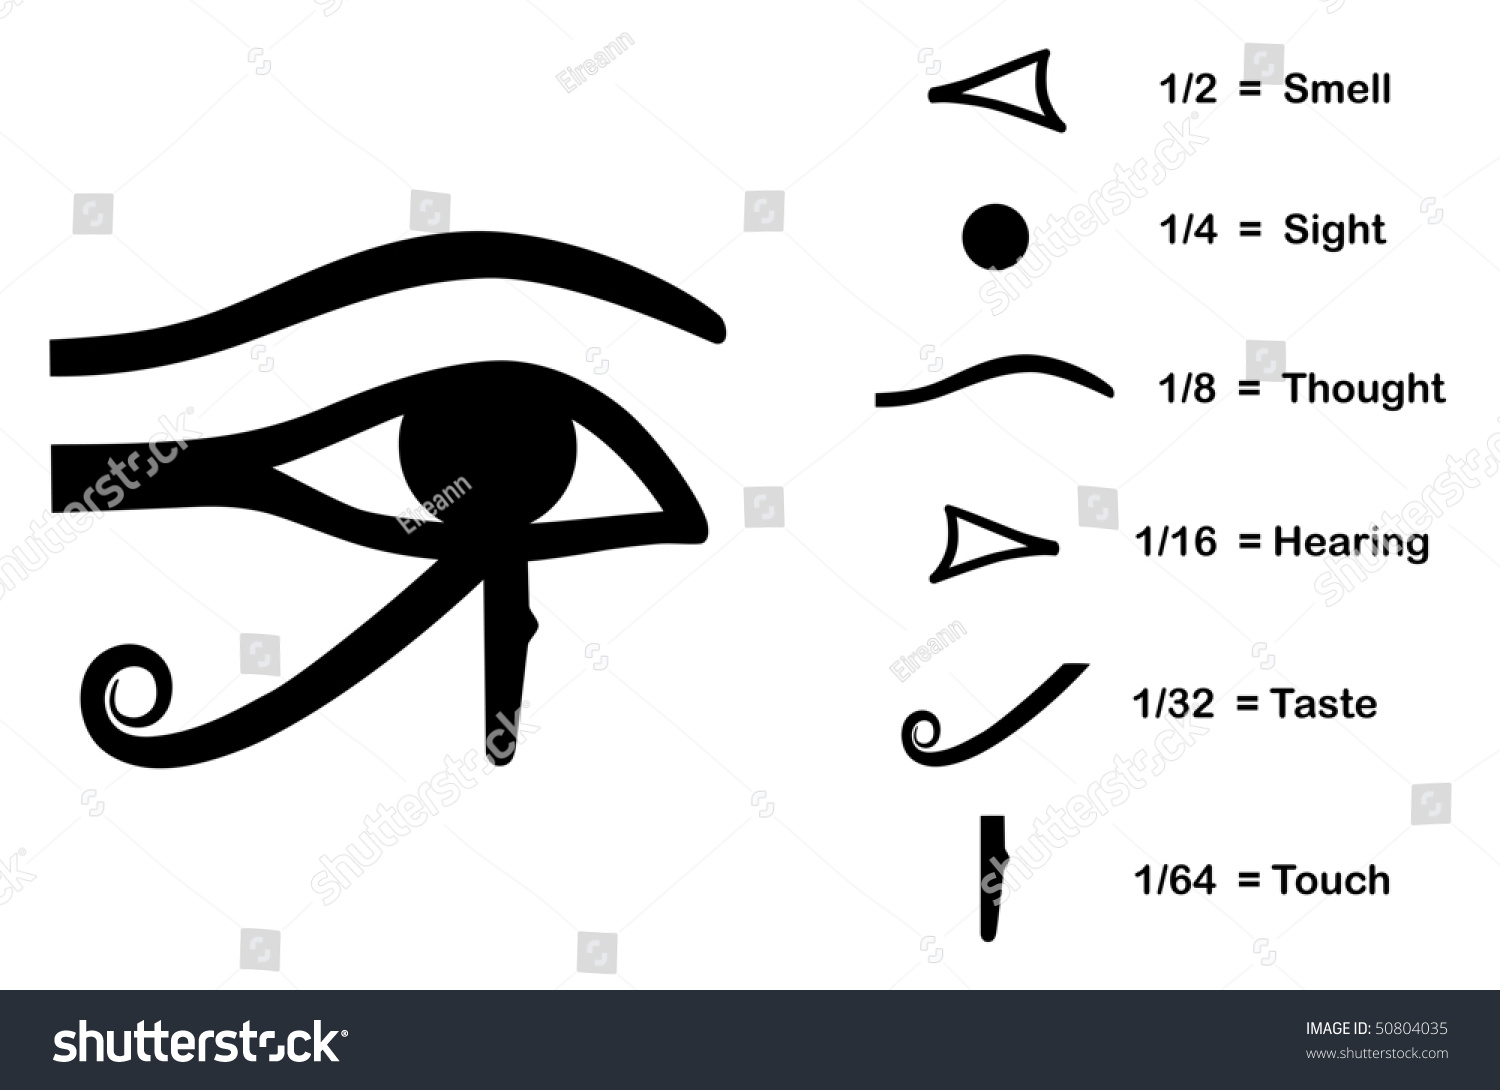 Worksheet Parts Of A Fraction eye horus divided into six parts stock illustration 50804035 the of each part represents a mathematical fraction and